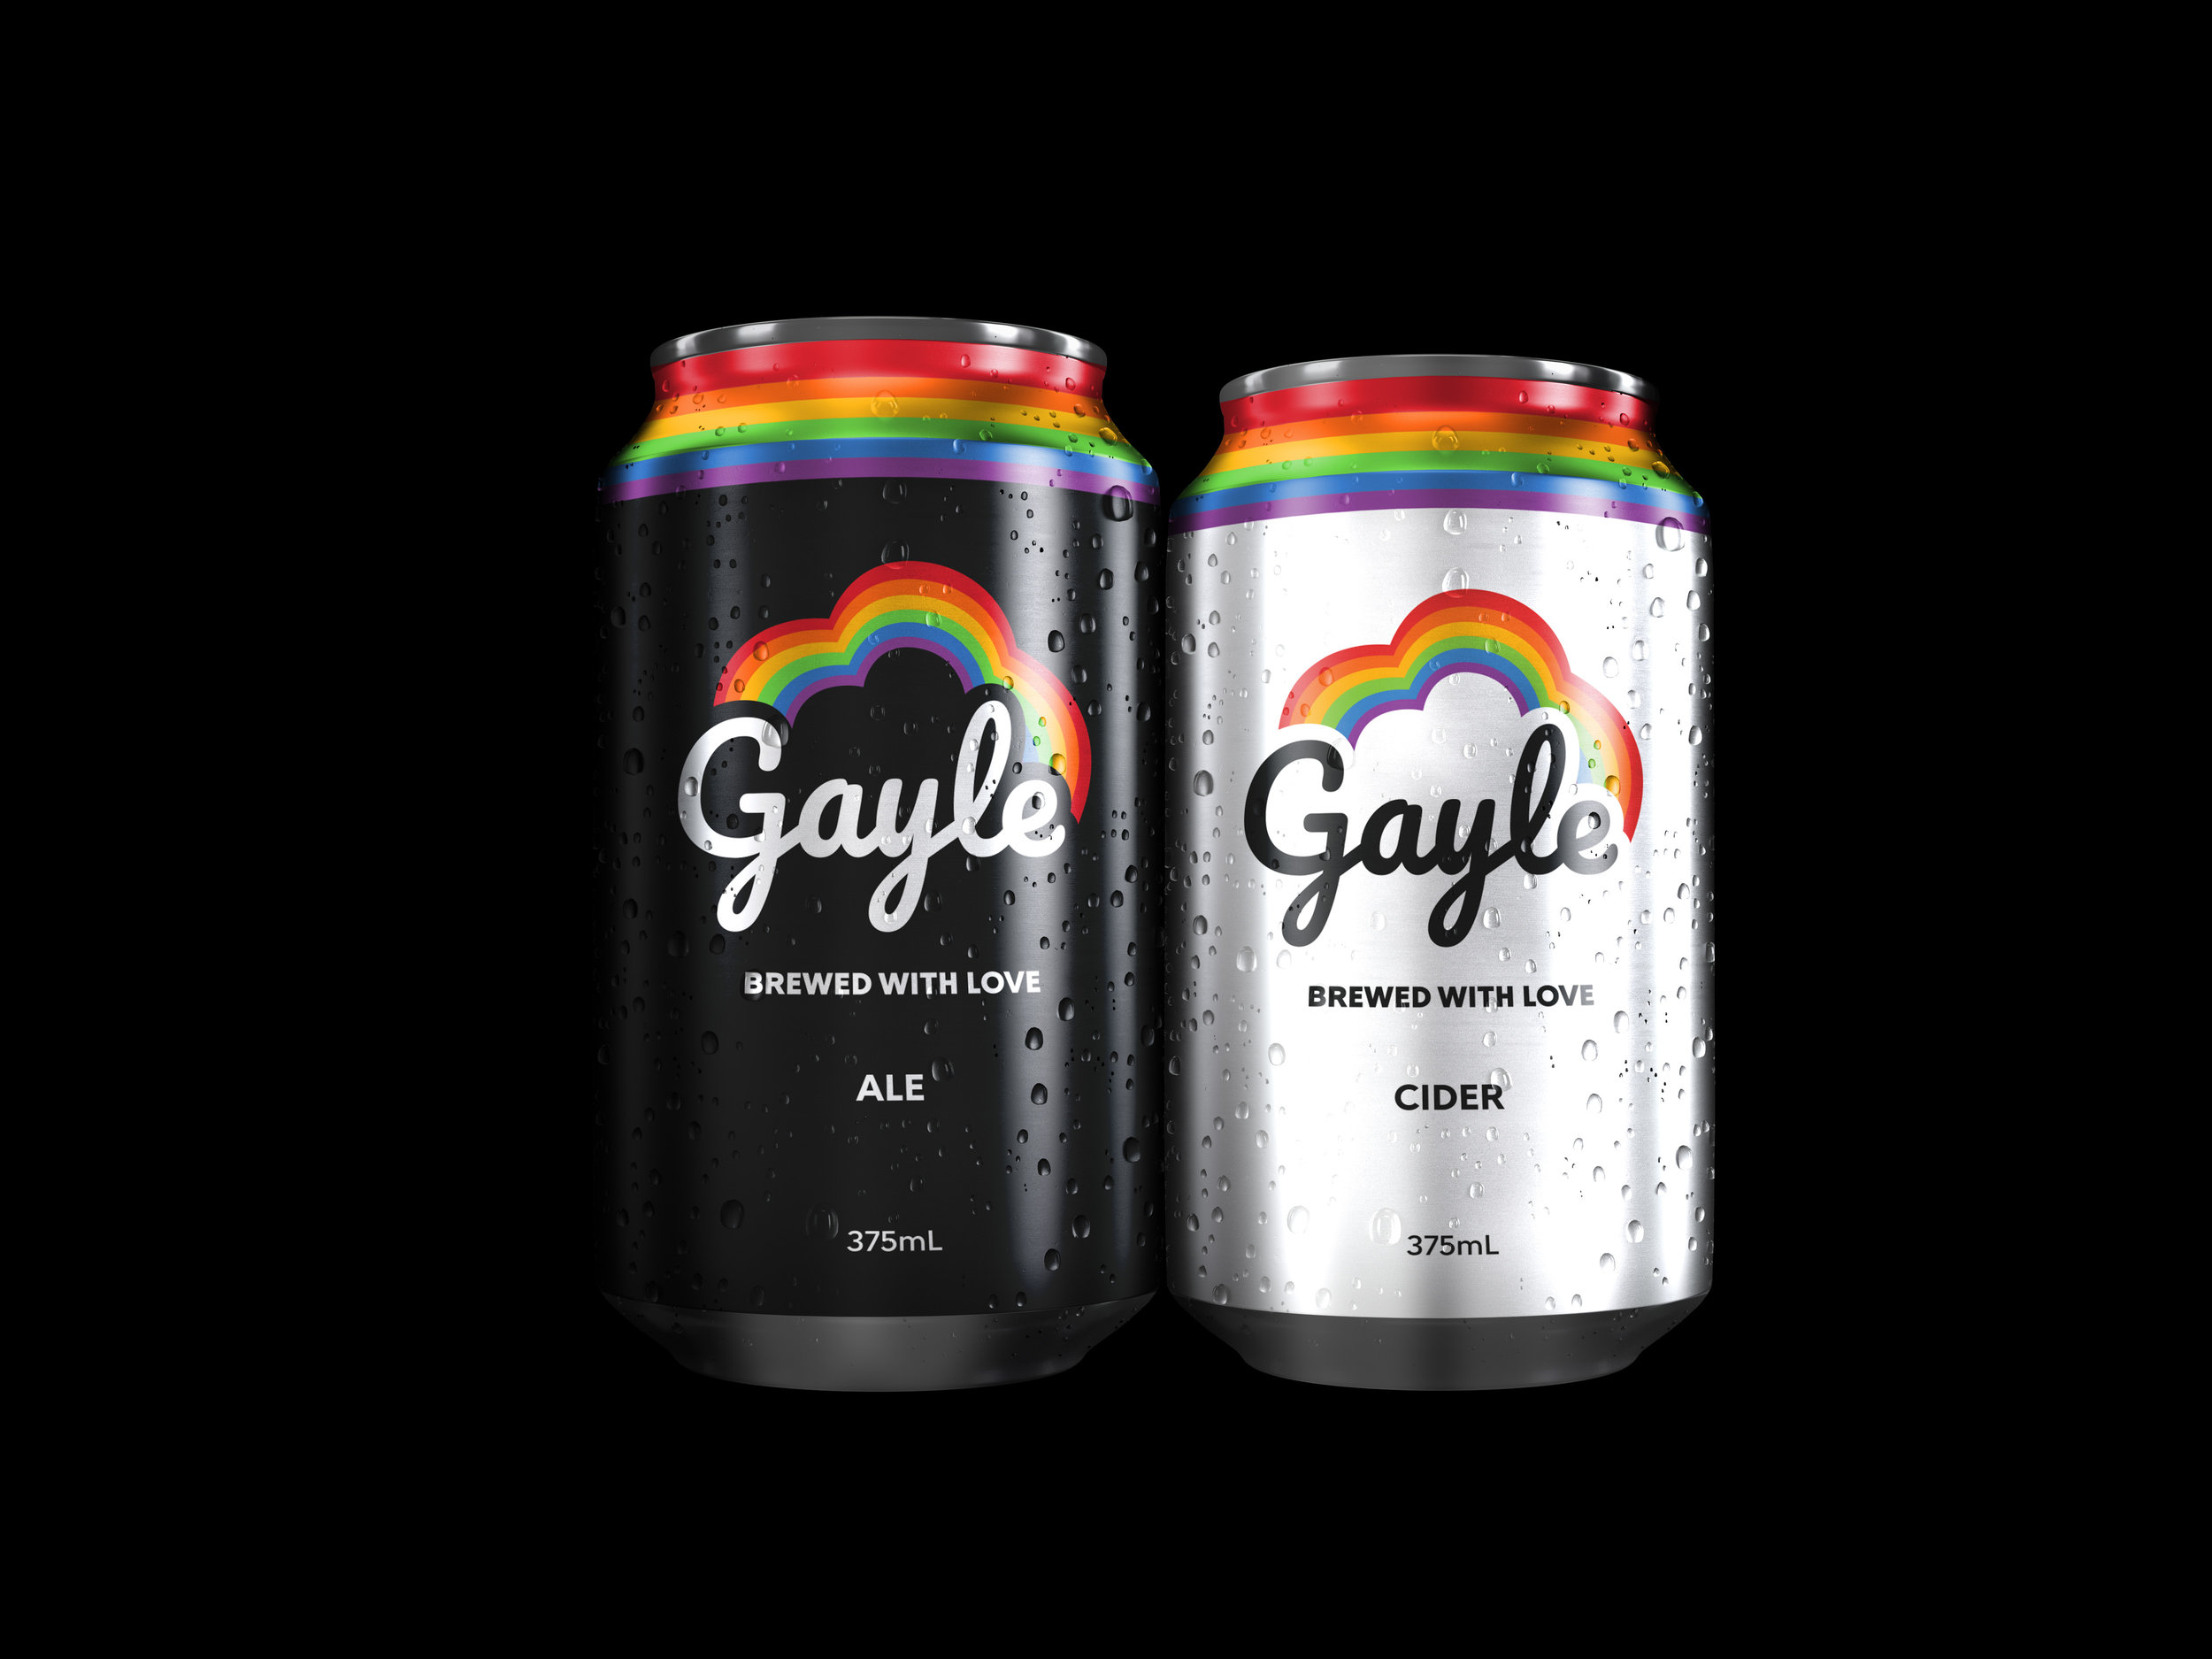 The Gayle Story - Gayle is Australia's & Thailand's first and only gay beer and cider company